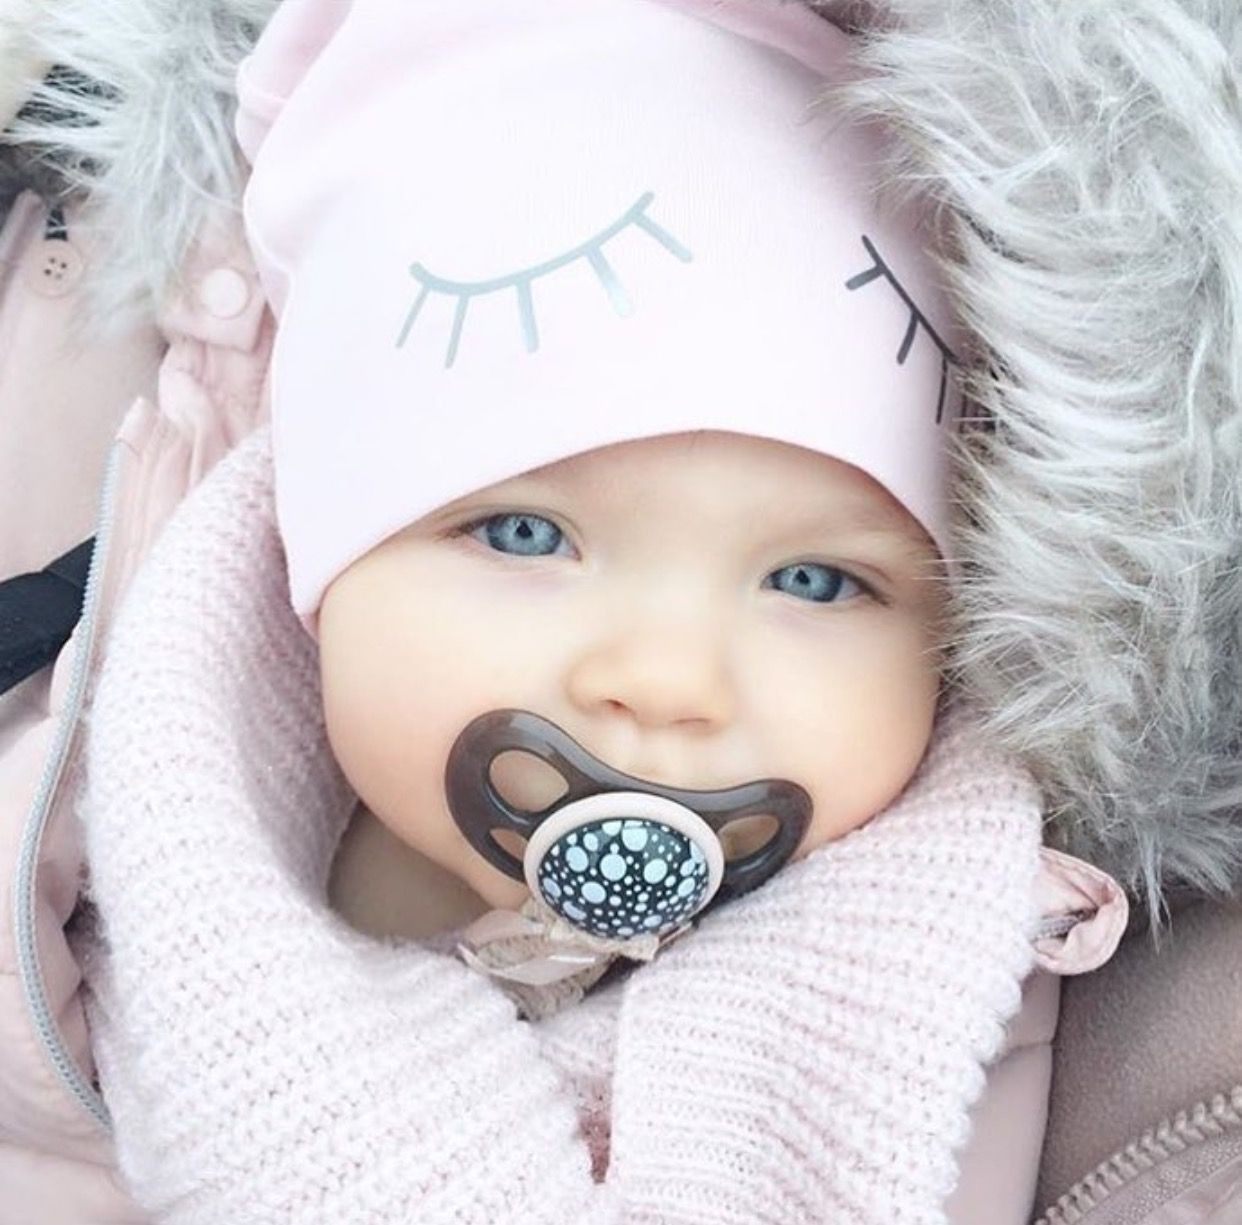 Pin By Queencaylz On Baby Baby Tumblr Cute Baby Girl Cute Baby Pictures